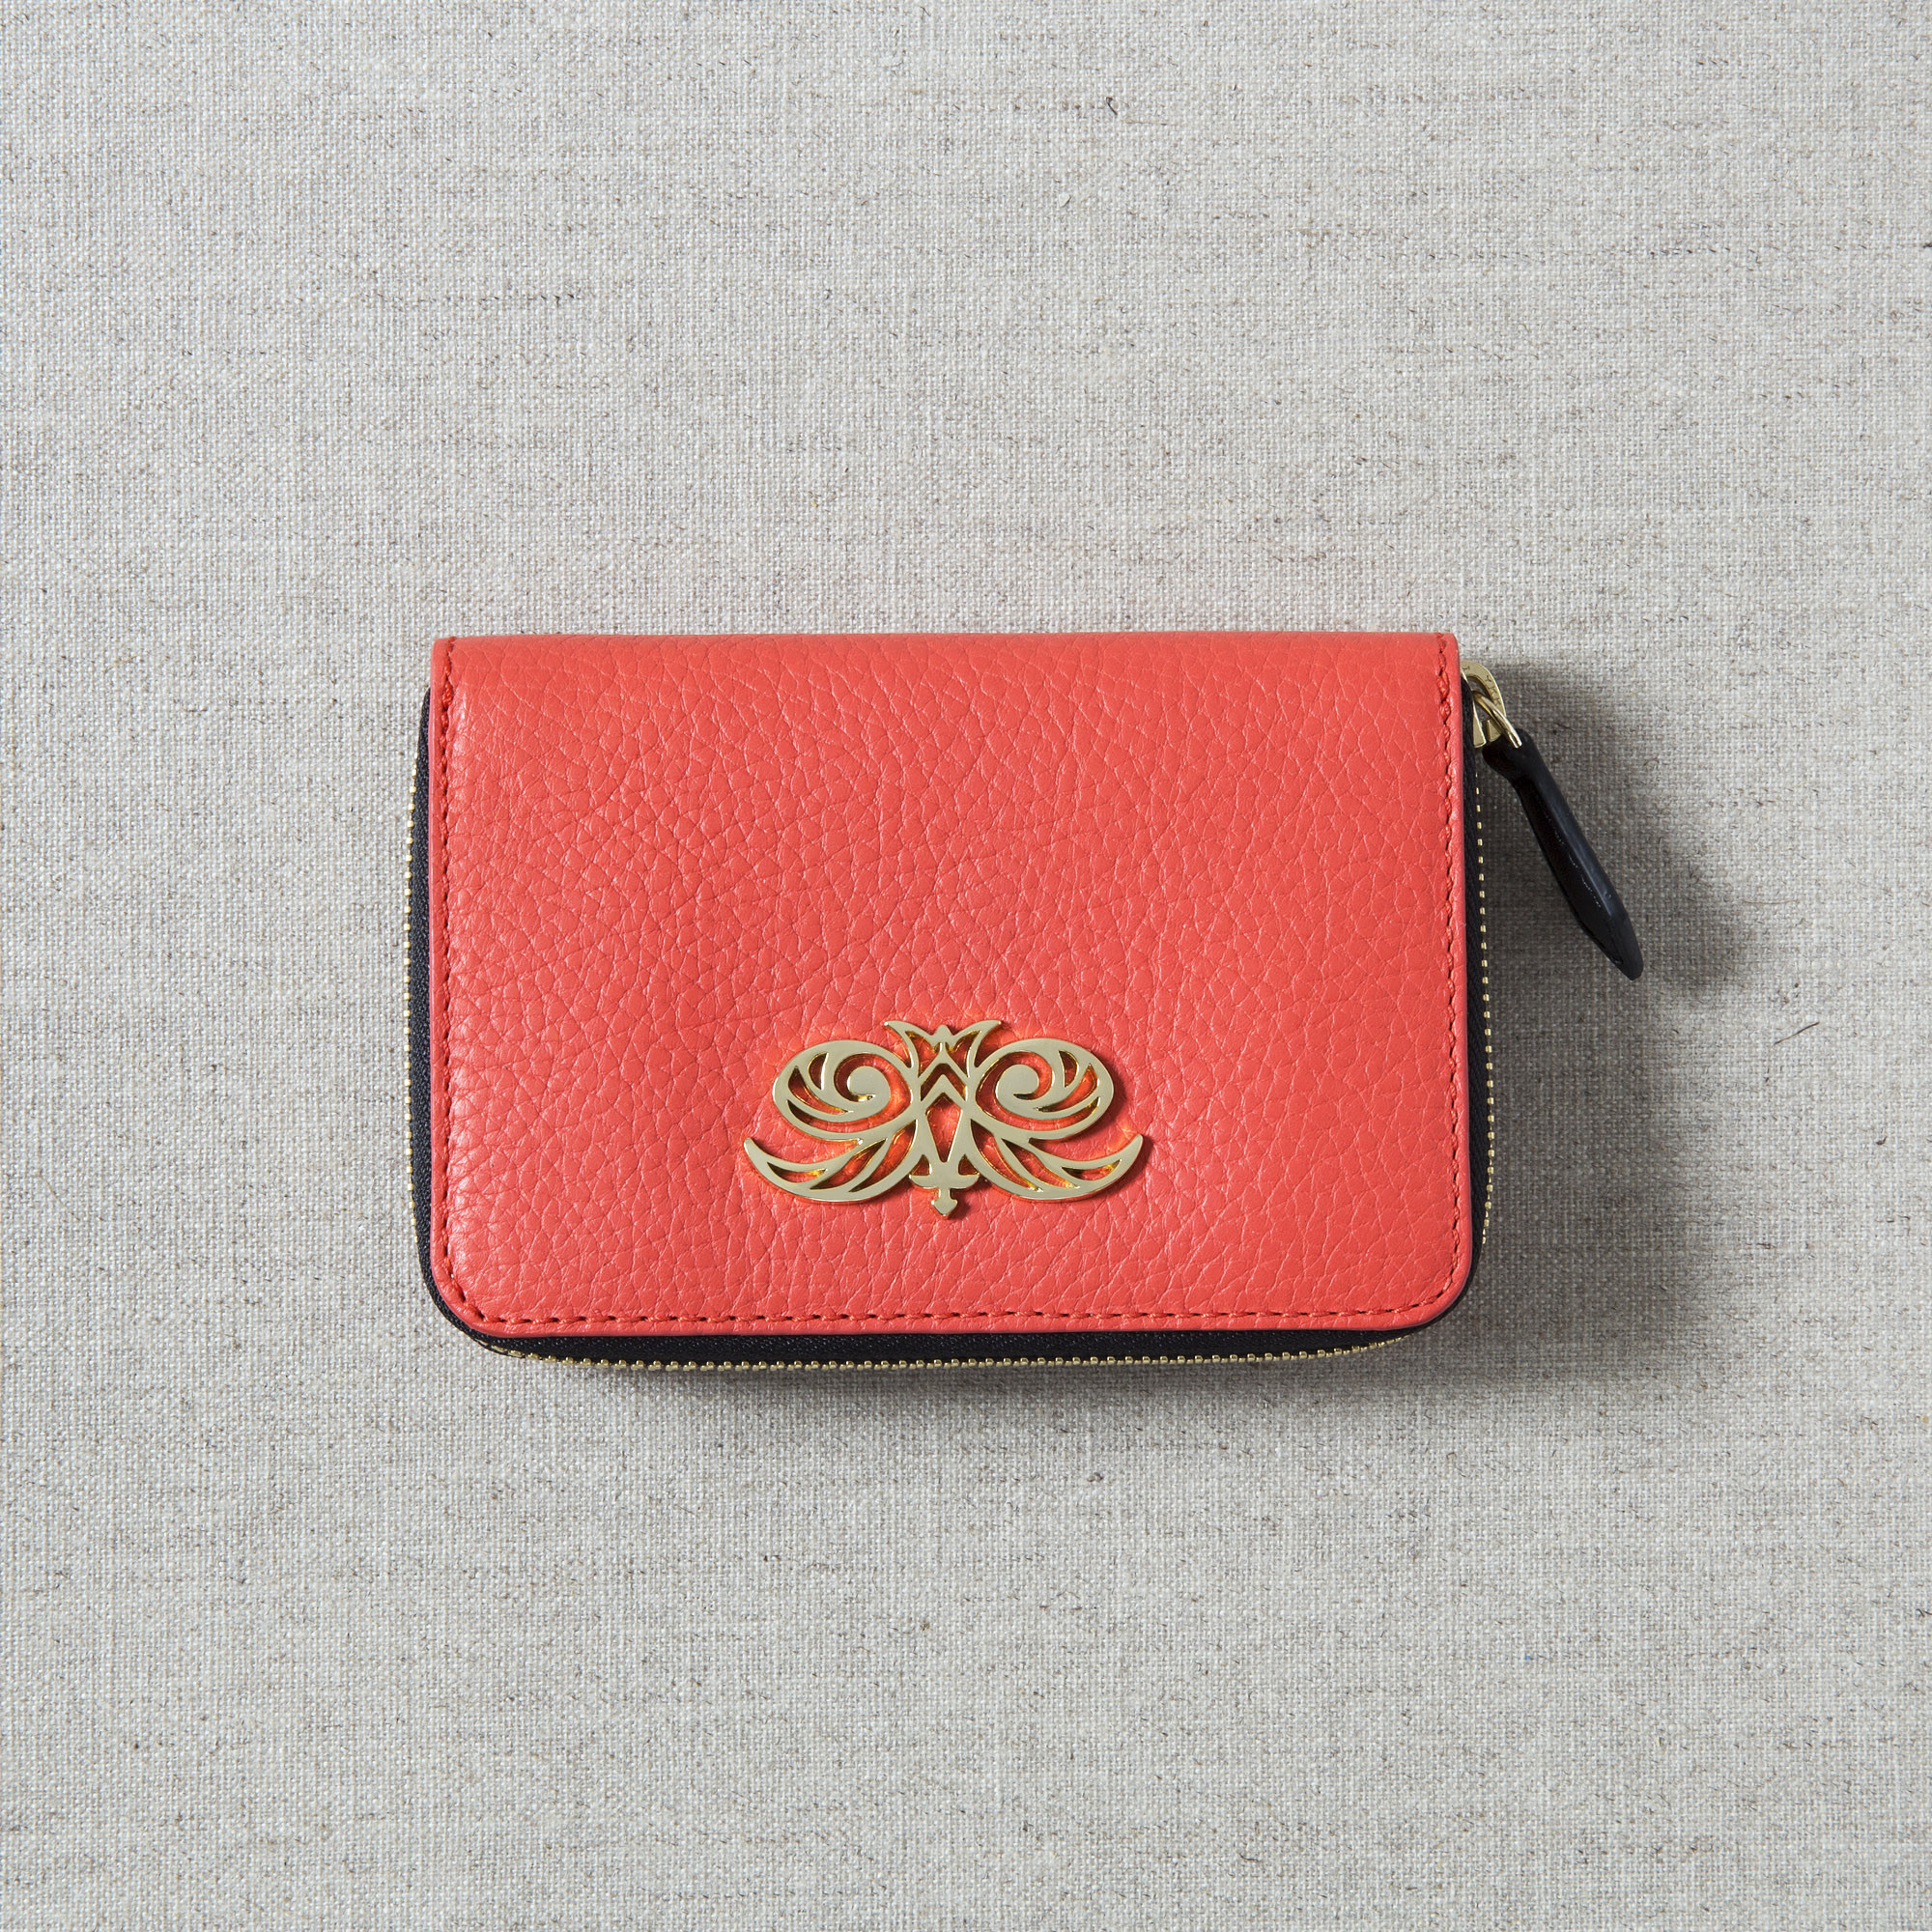 Compact zipped wallet MADRID in grained calfskin, hibiscus color - on linen